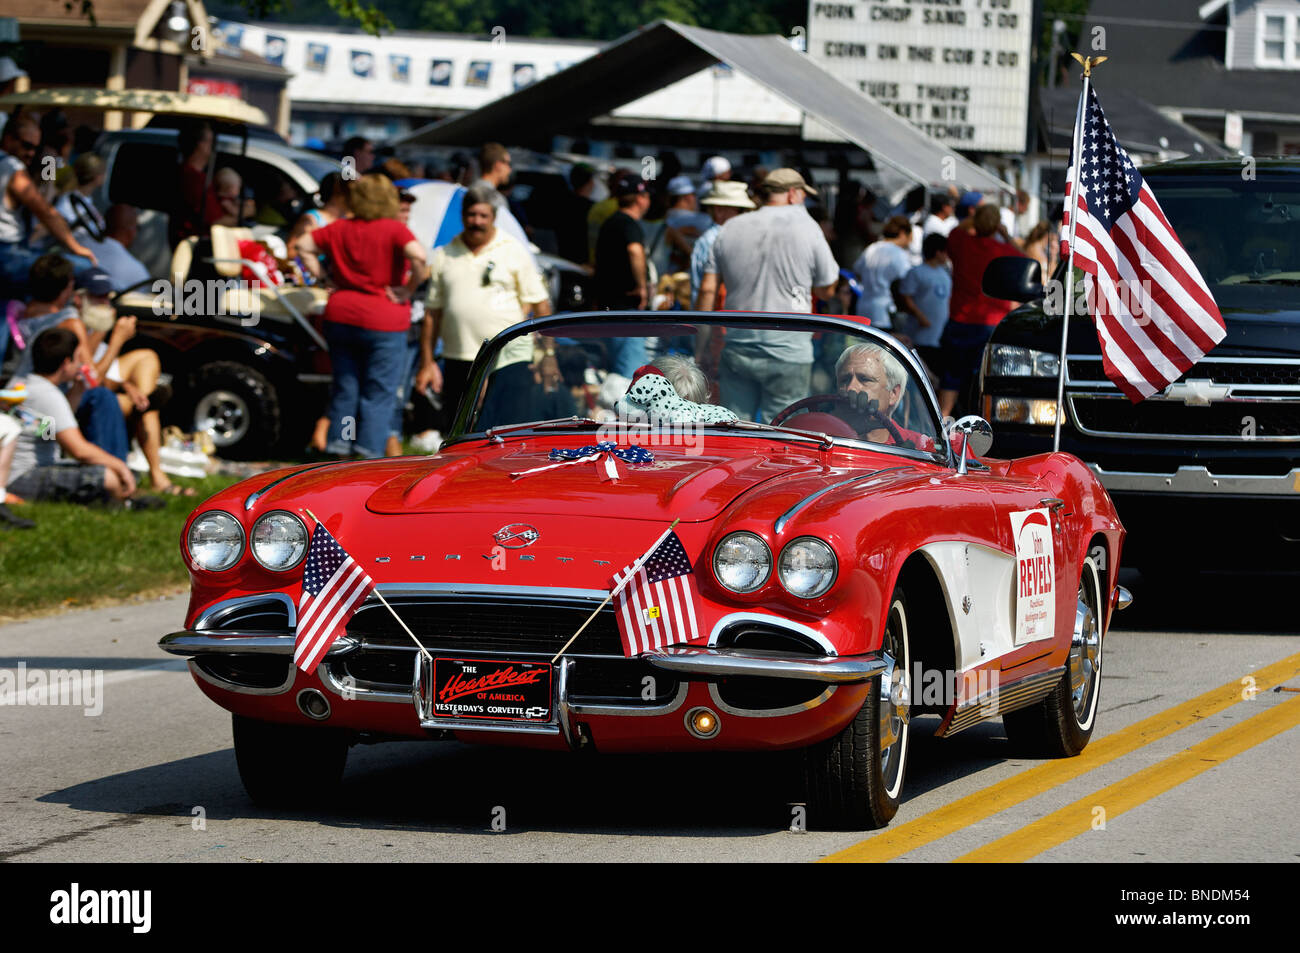 Red 1962 Chevrolet Corvette In Oldest Continuous Independence Day